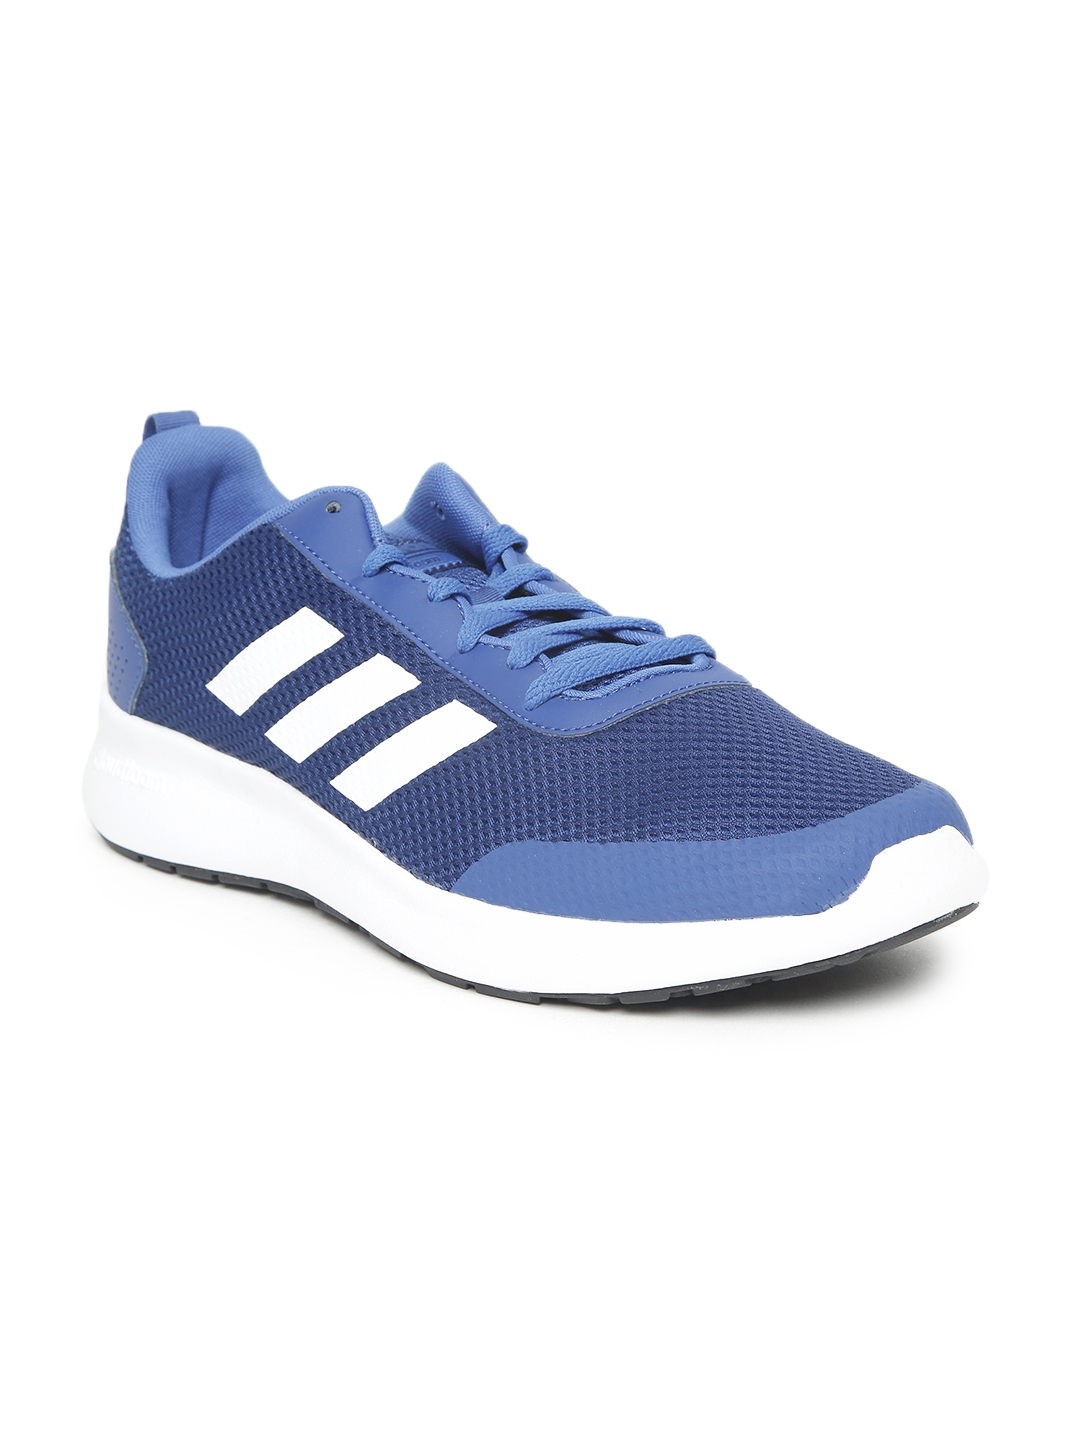 02ada65b39a Buy ADIDAS Men Blue ELEMENT RACE Running Shoes - Sports Shoes for ...